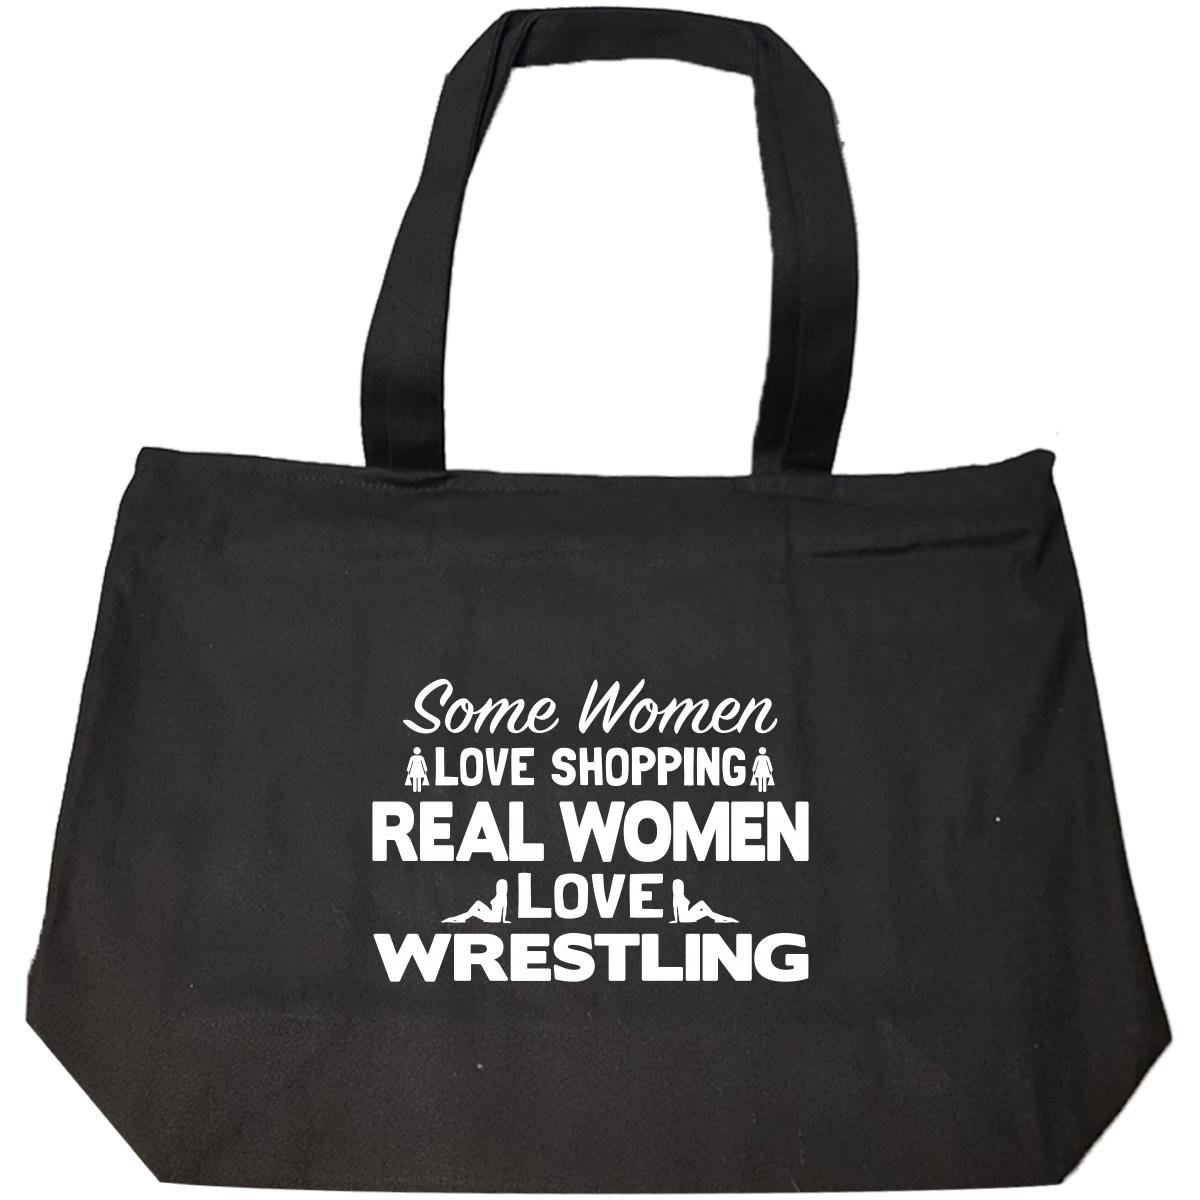 Some Women Love Shopping Real Women Love Wrestling - Tote Bag With Zip by Brands Banned